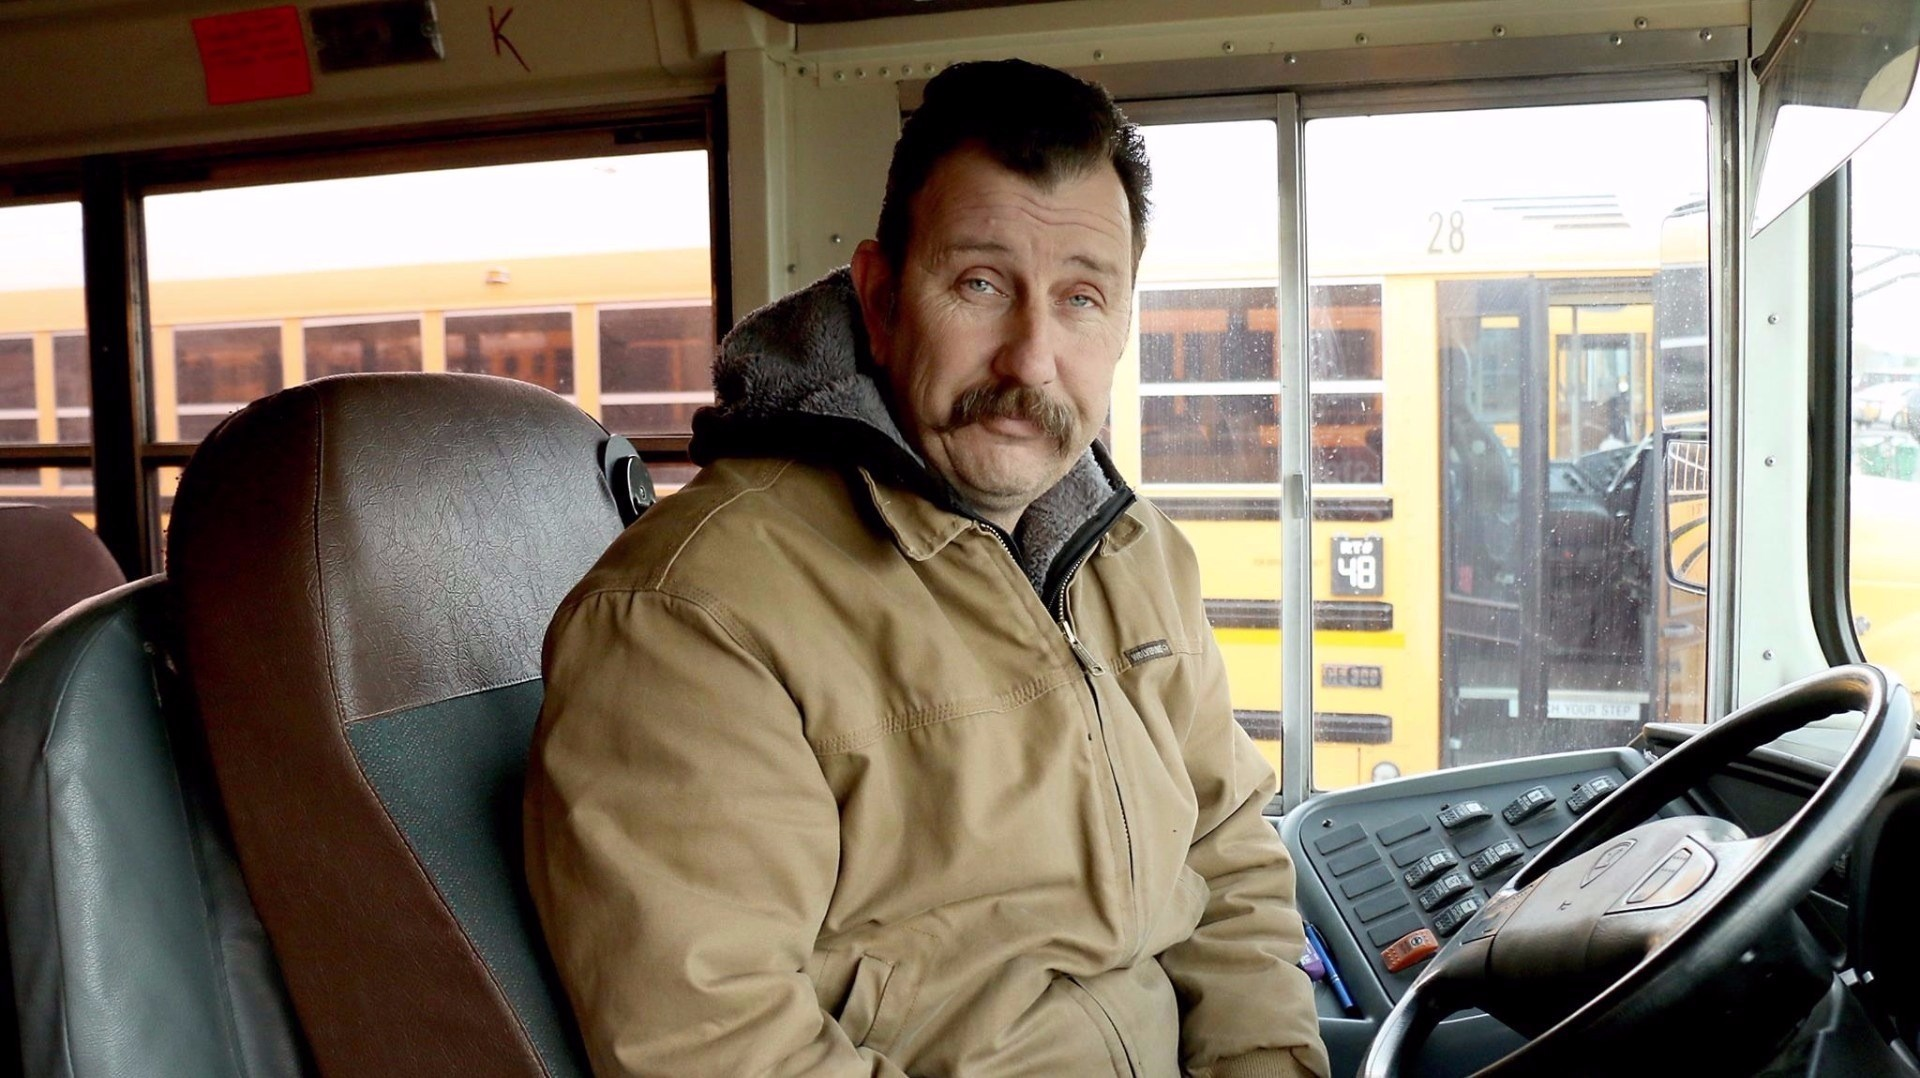 School bus driver buys hats and gloves for students in need